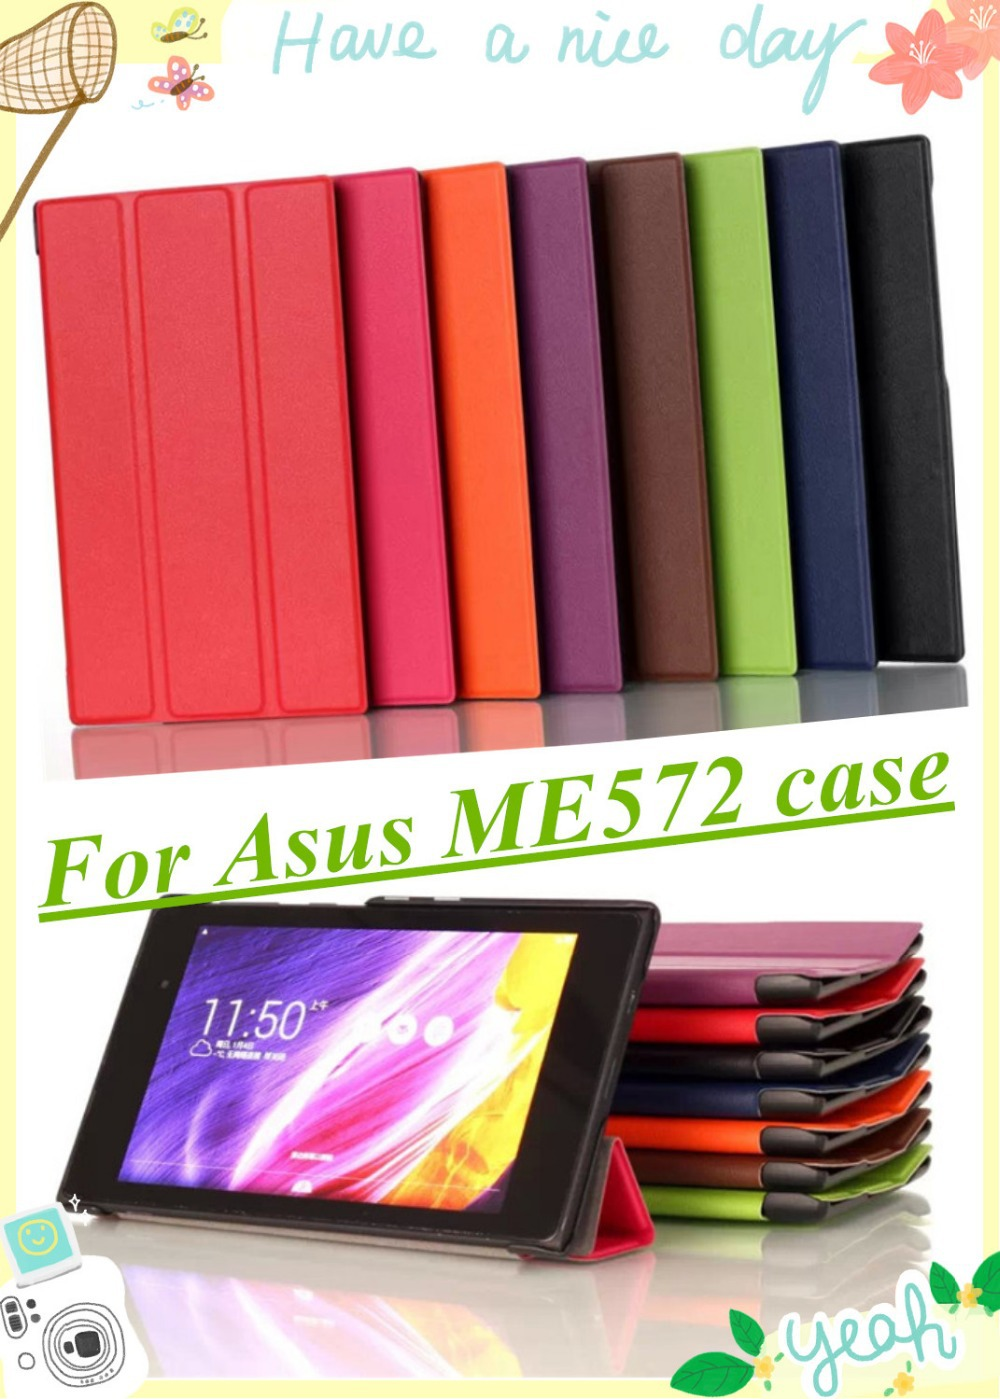 High Quality Magnetic Smart Stand Case For ASUS MeMO Pad 7 ME572C ME572CL ME572 tablet cover case With Screen Protector & Stylus resale me572 flip leather case for asus memo pad 7 me572c me572cl magnet cover case screen protectors